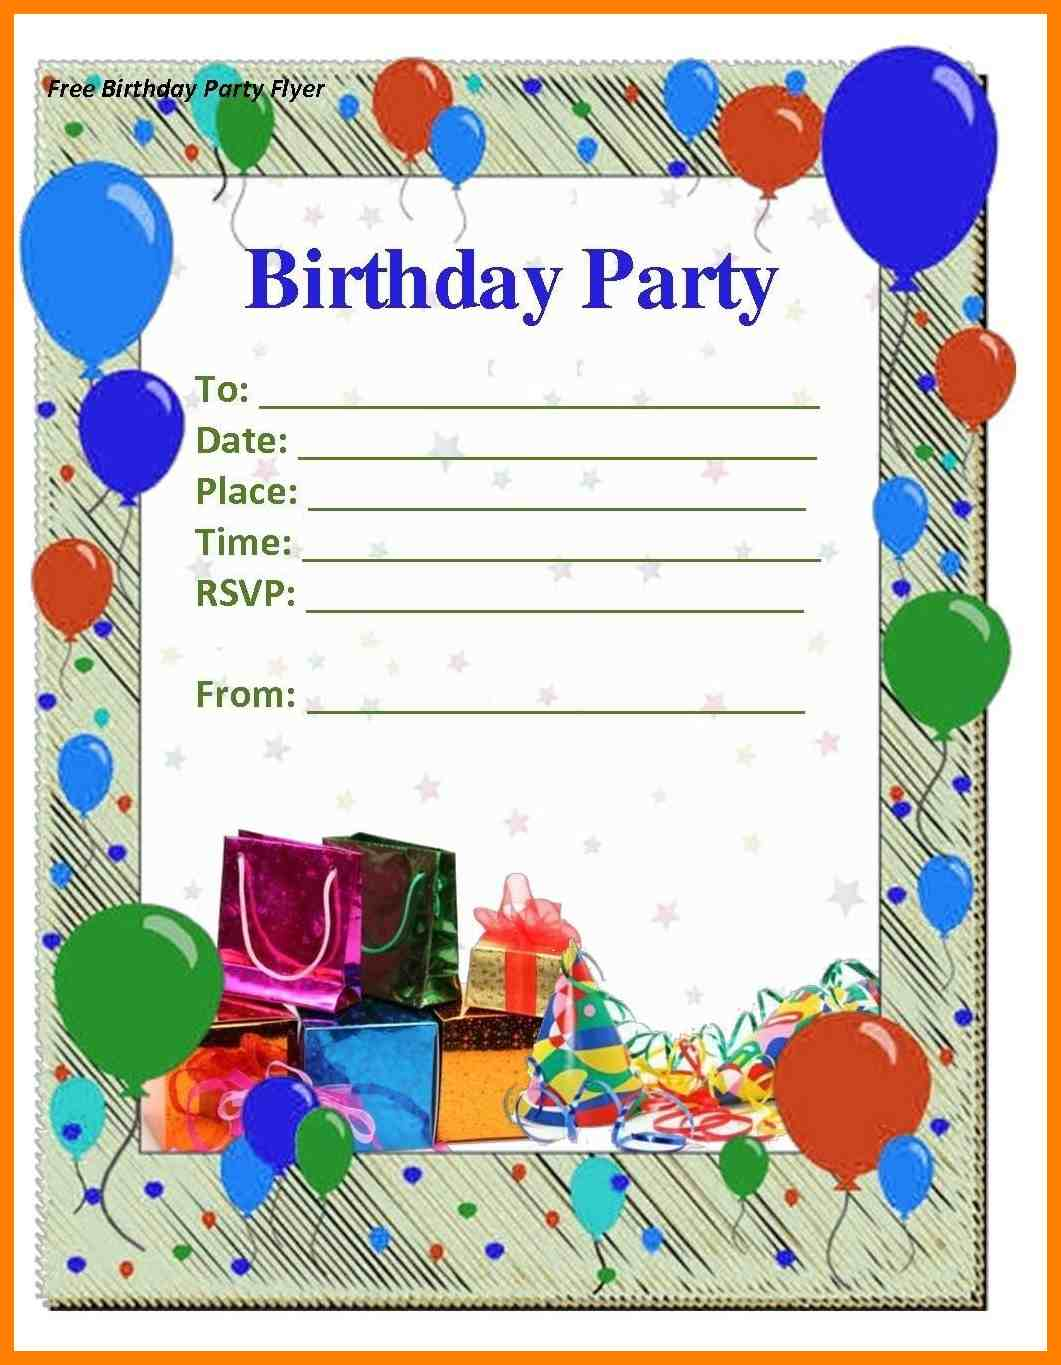 free birthday party invitation templates uk ; birthday-invitation-template-party-invitation-template-uk-fresh-16-birthday-invitation-templates-images-ac29cc288-free-birthday